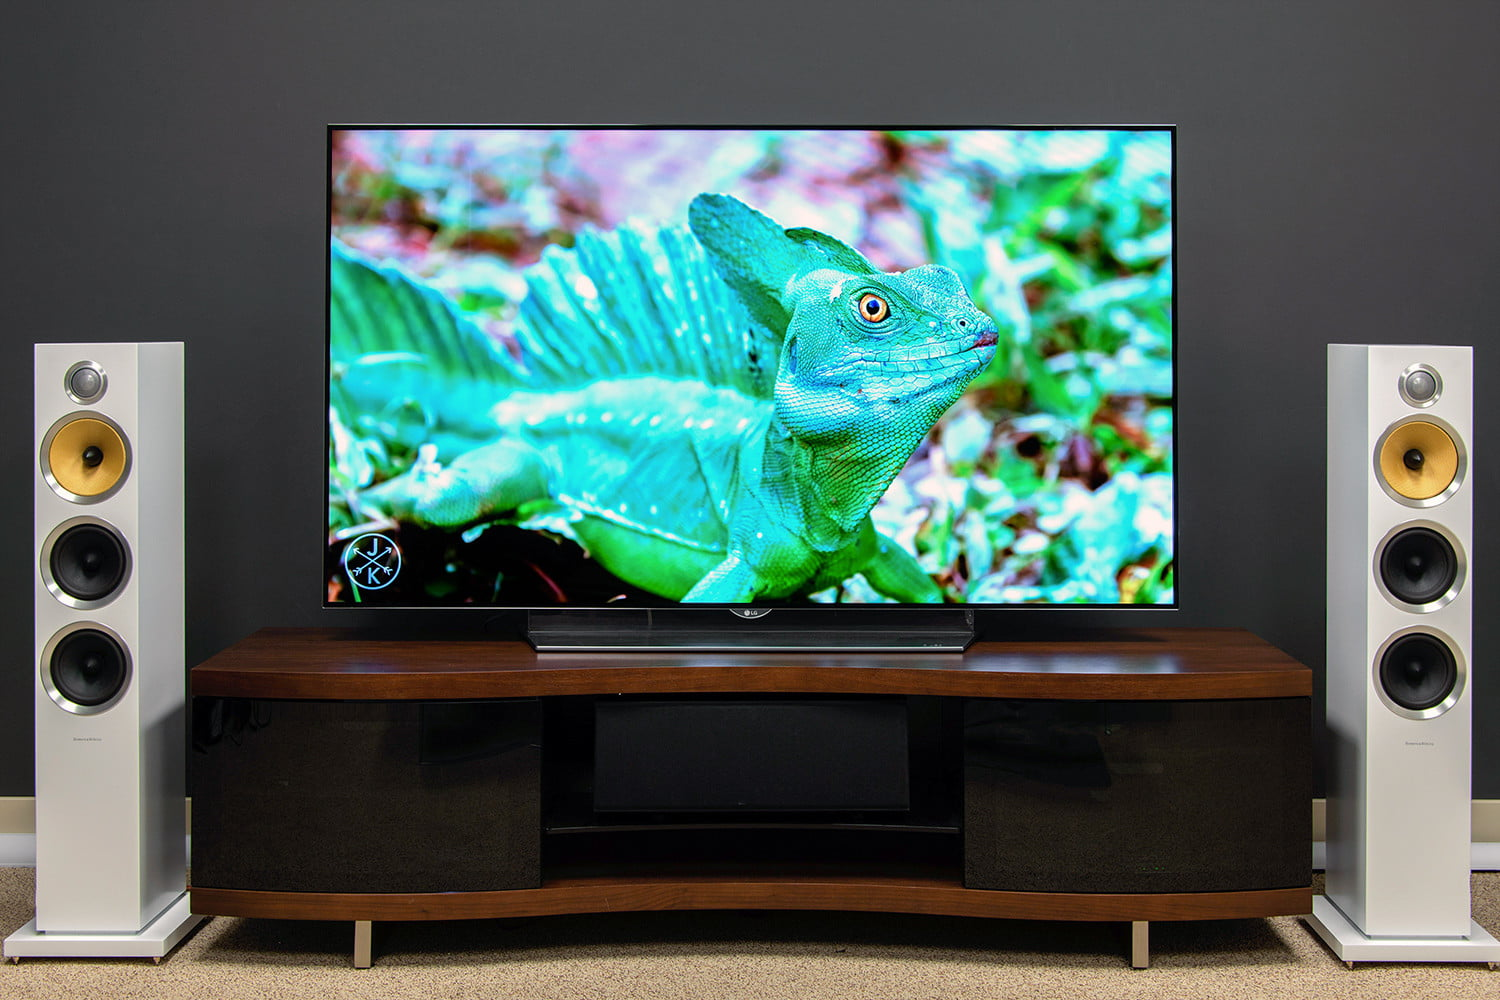 OLED TVs - what it is, features and specifications 96